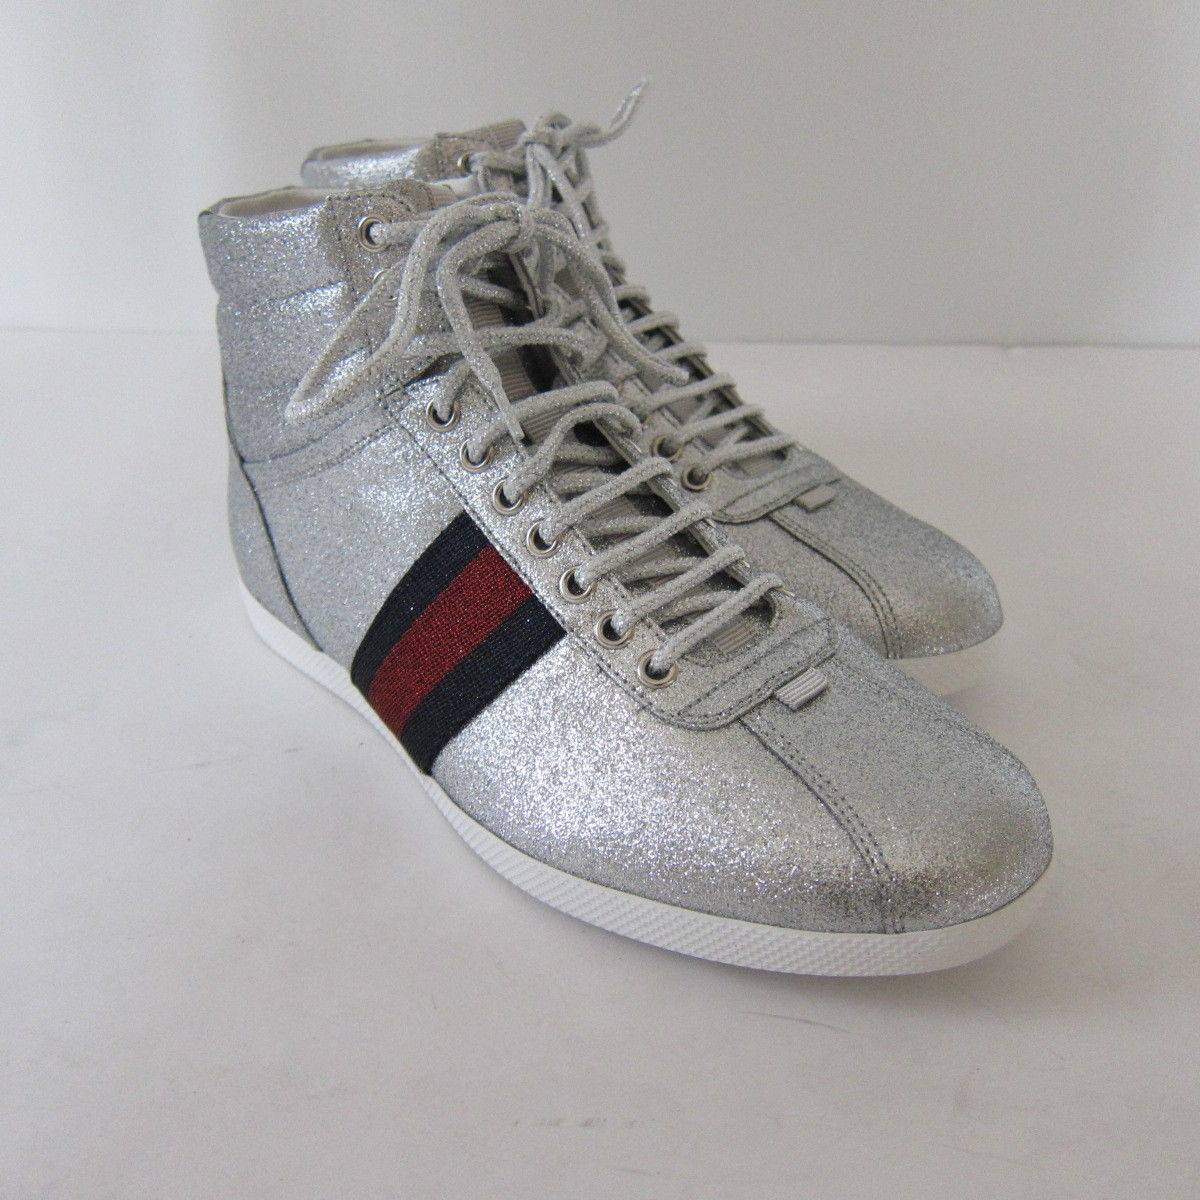 876328660 S l1600. S l1600. Previous. S-2134319 New Gucci Silver Glitter HiTop Sneakers  Shoes Size US 8.5 Marked 7.5